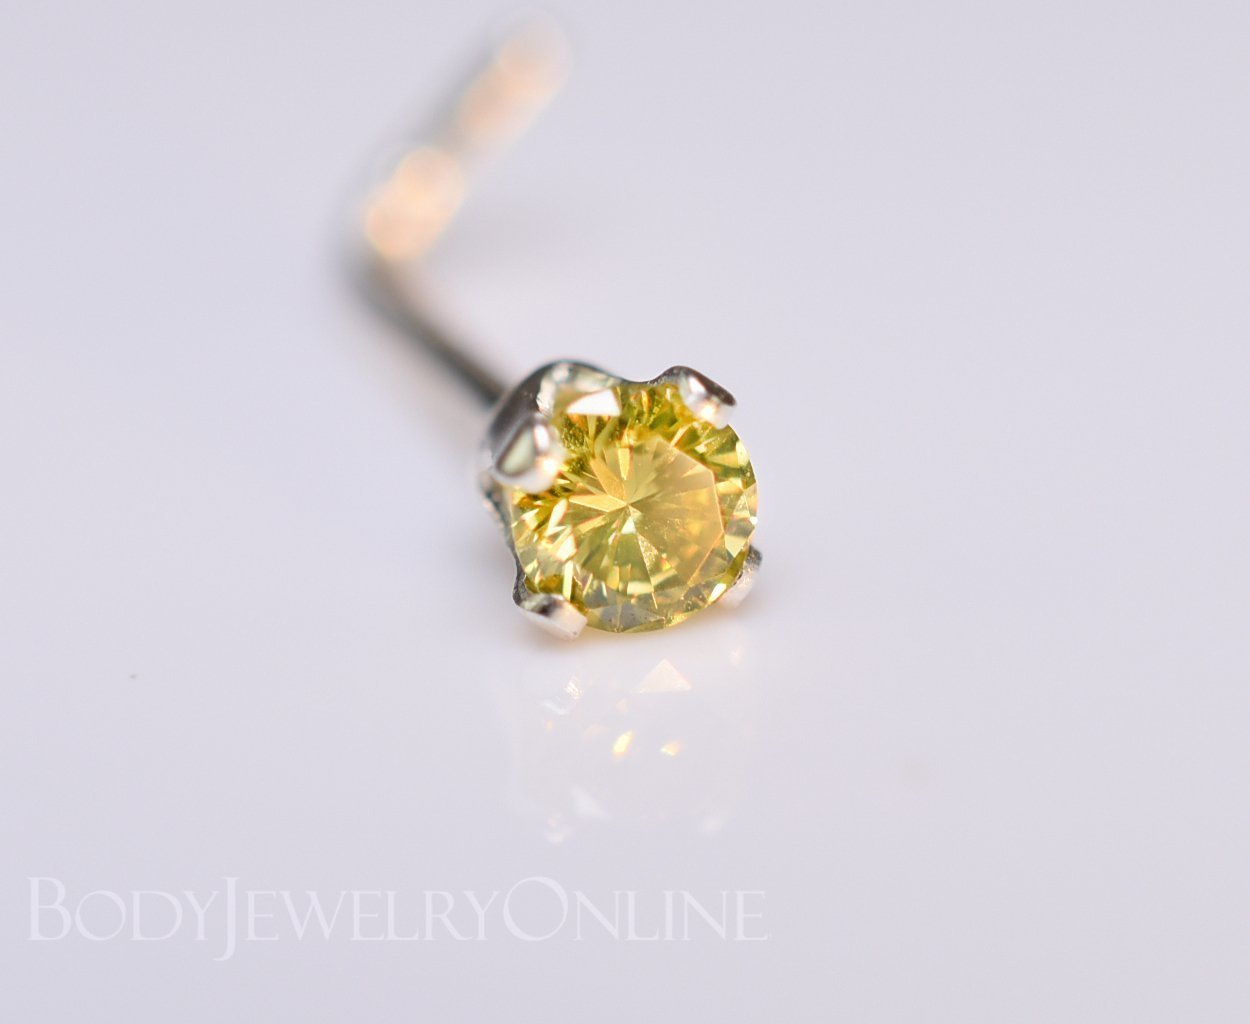 Genuine CANARY YELLOW DIAMOND Nose Stud 2mm - Post w/ 14k Solid Yellow or White Gold or Sterling Silver - Helix Tragus Lobe Lip Cartilage by Body Jewelry Online